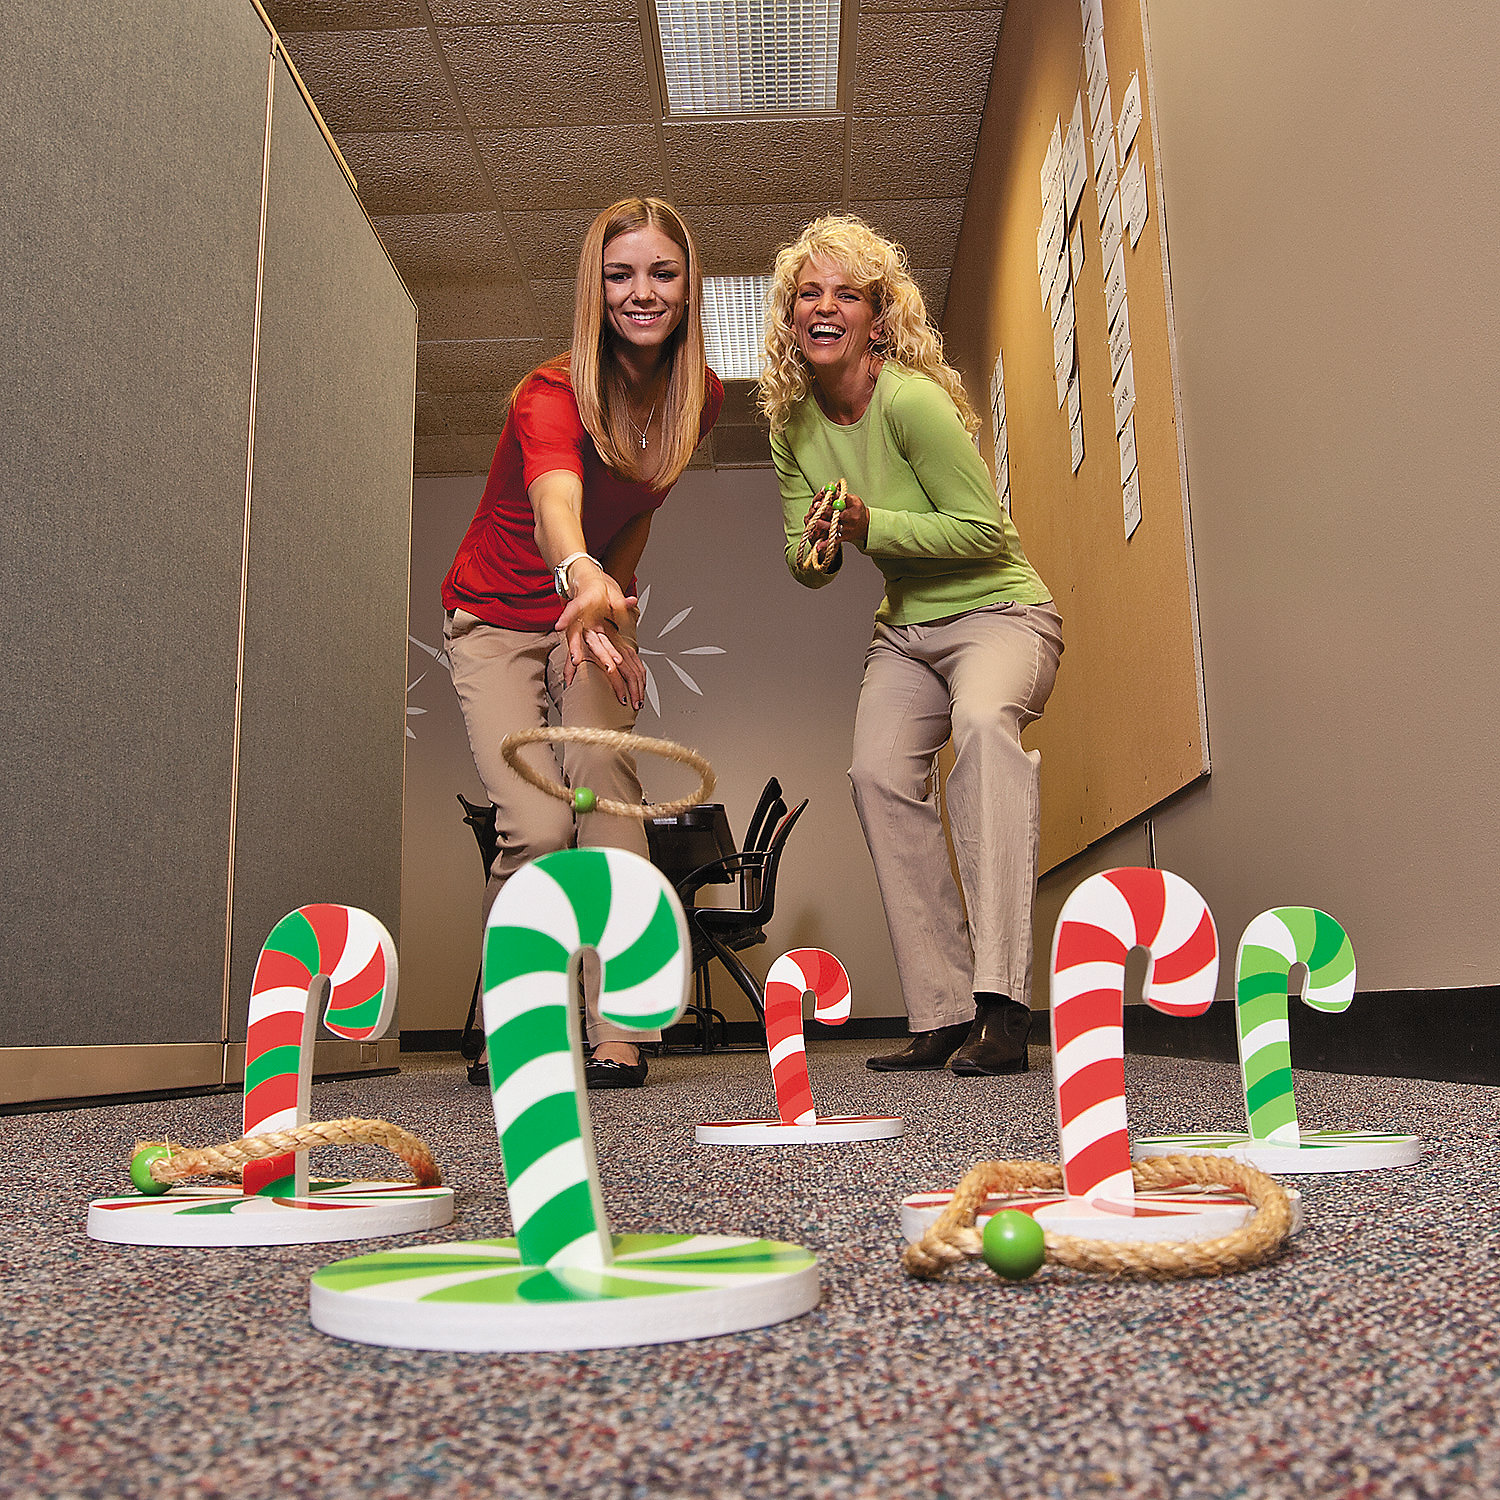 Top 10 Christmas Party Games: Candy Cane Ring Toss Game